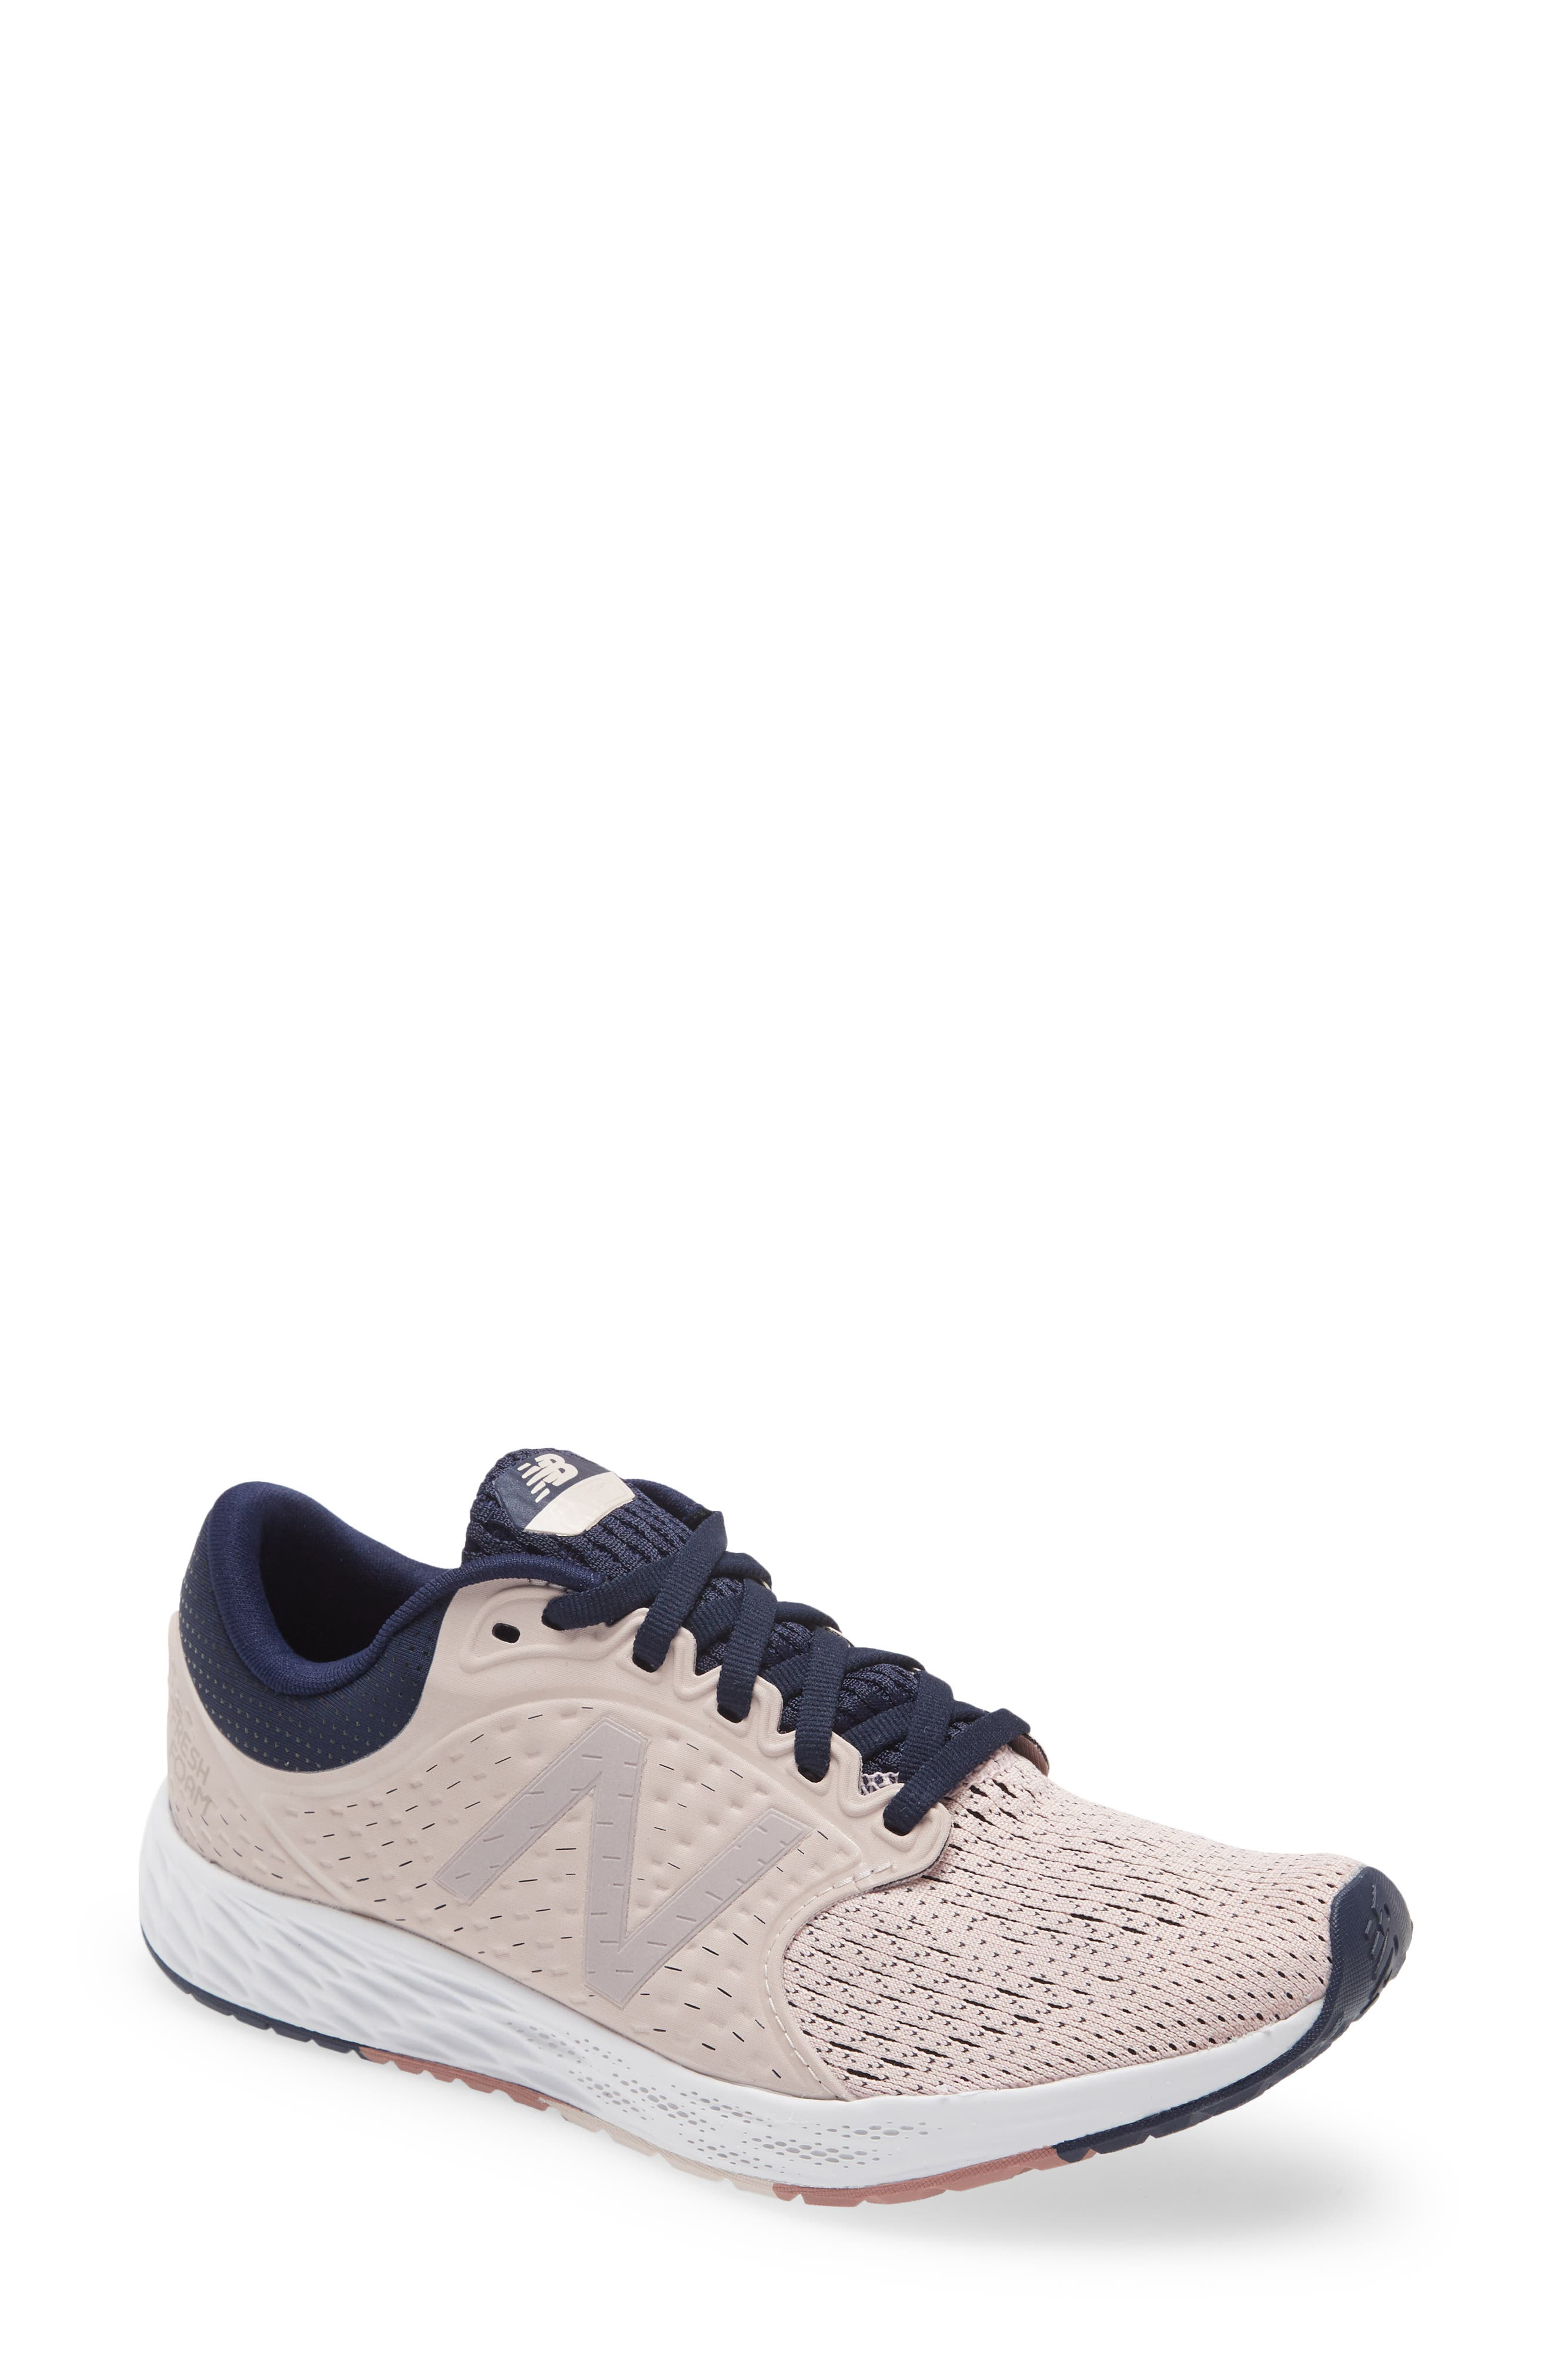 Image of New Balance Fresh Foam Zante Running Sneaker